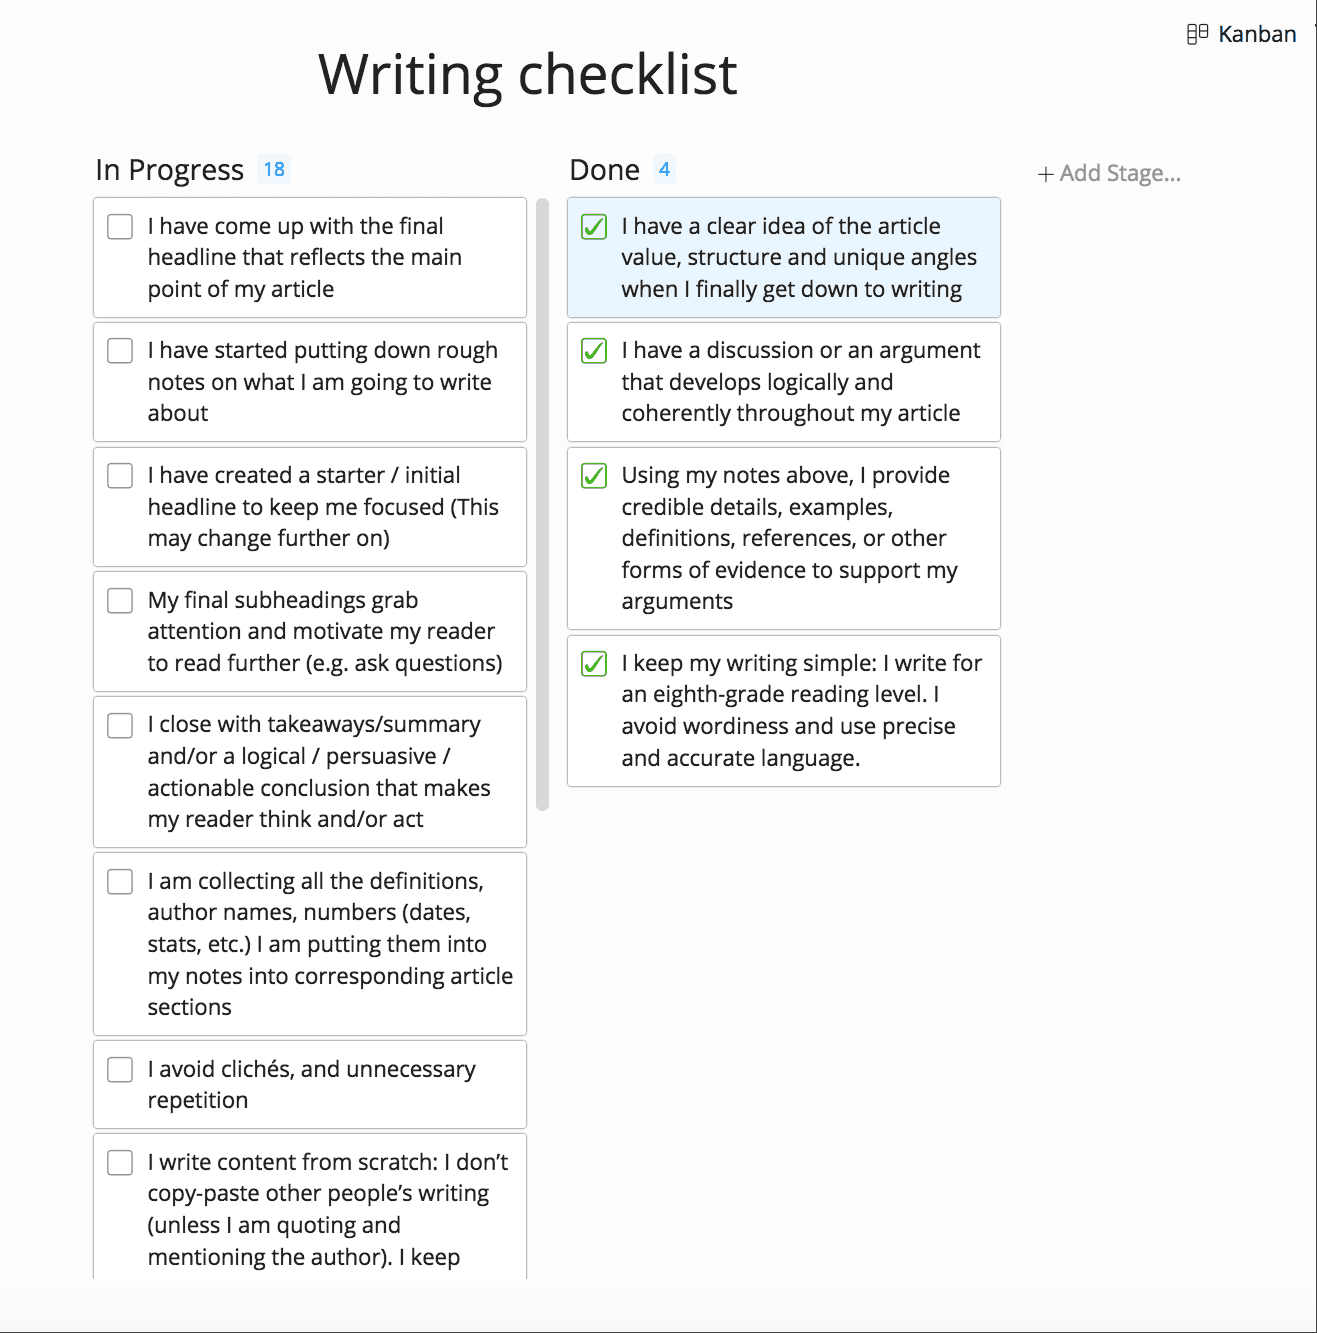 Writing checklist created with Zenkit